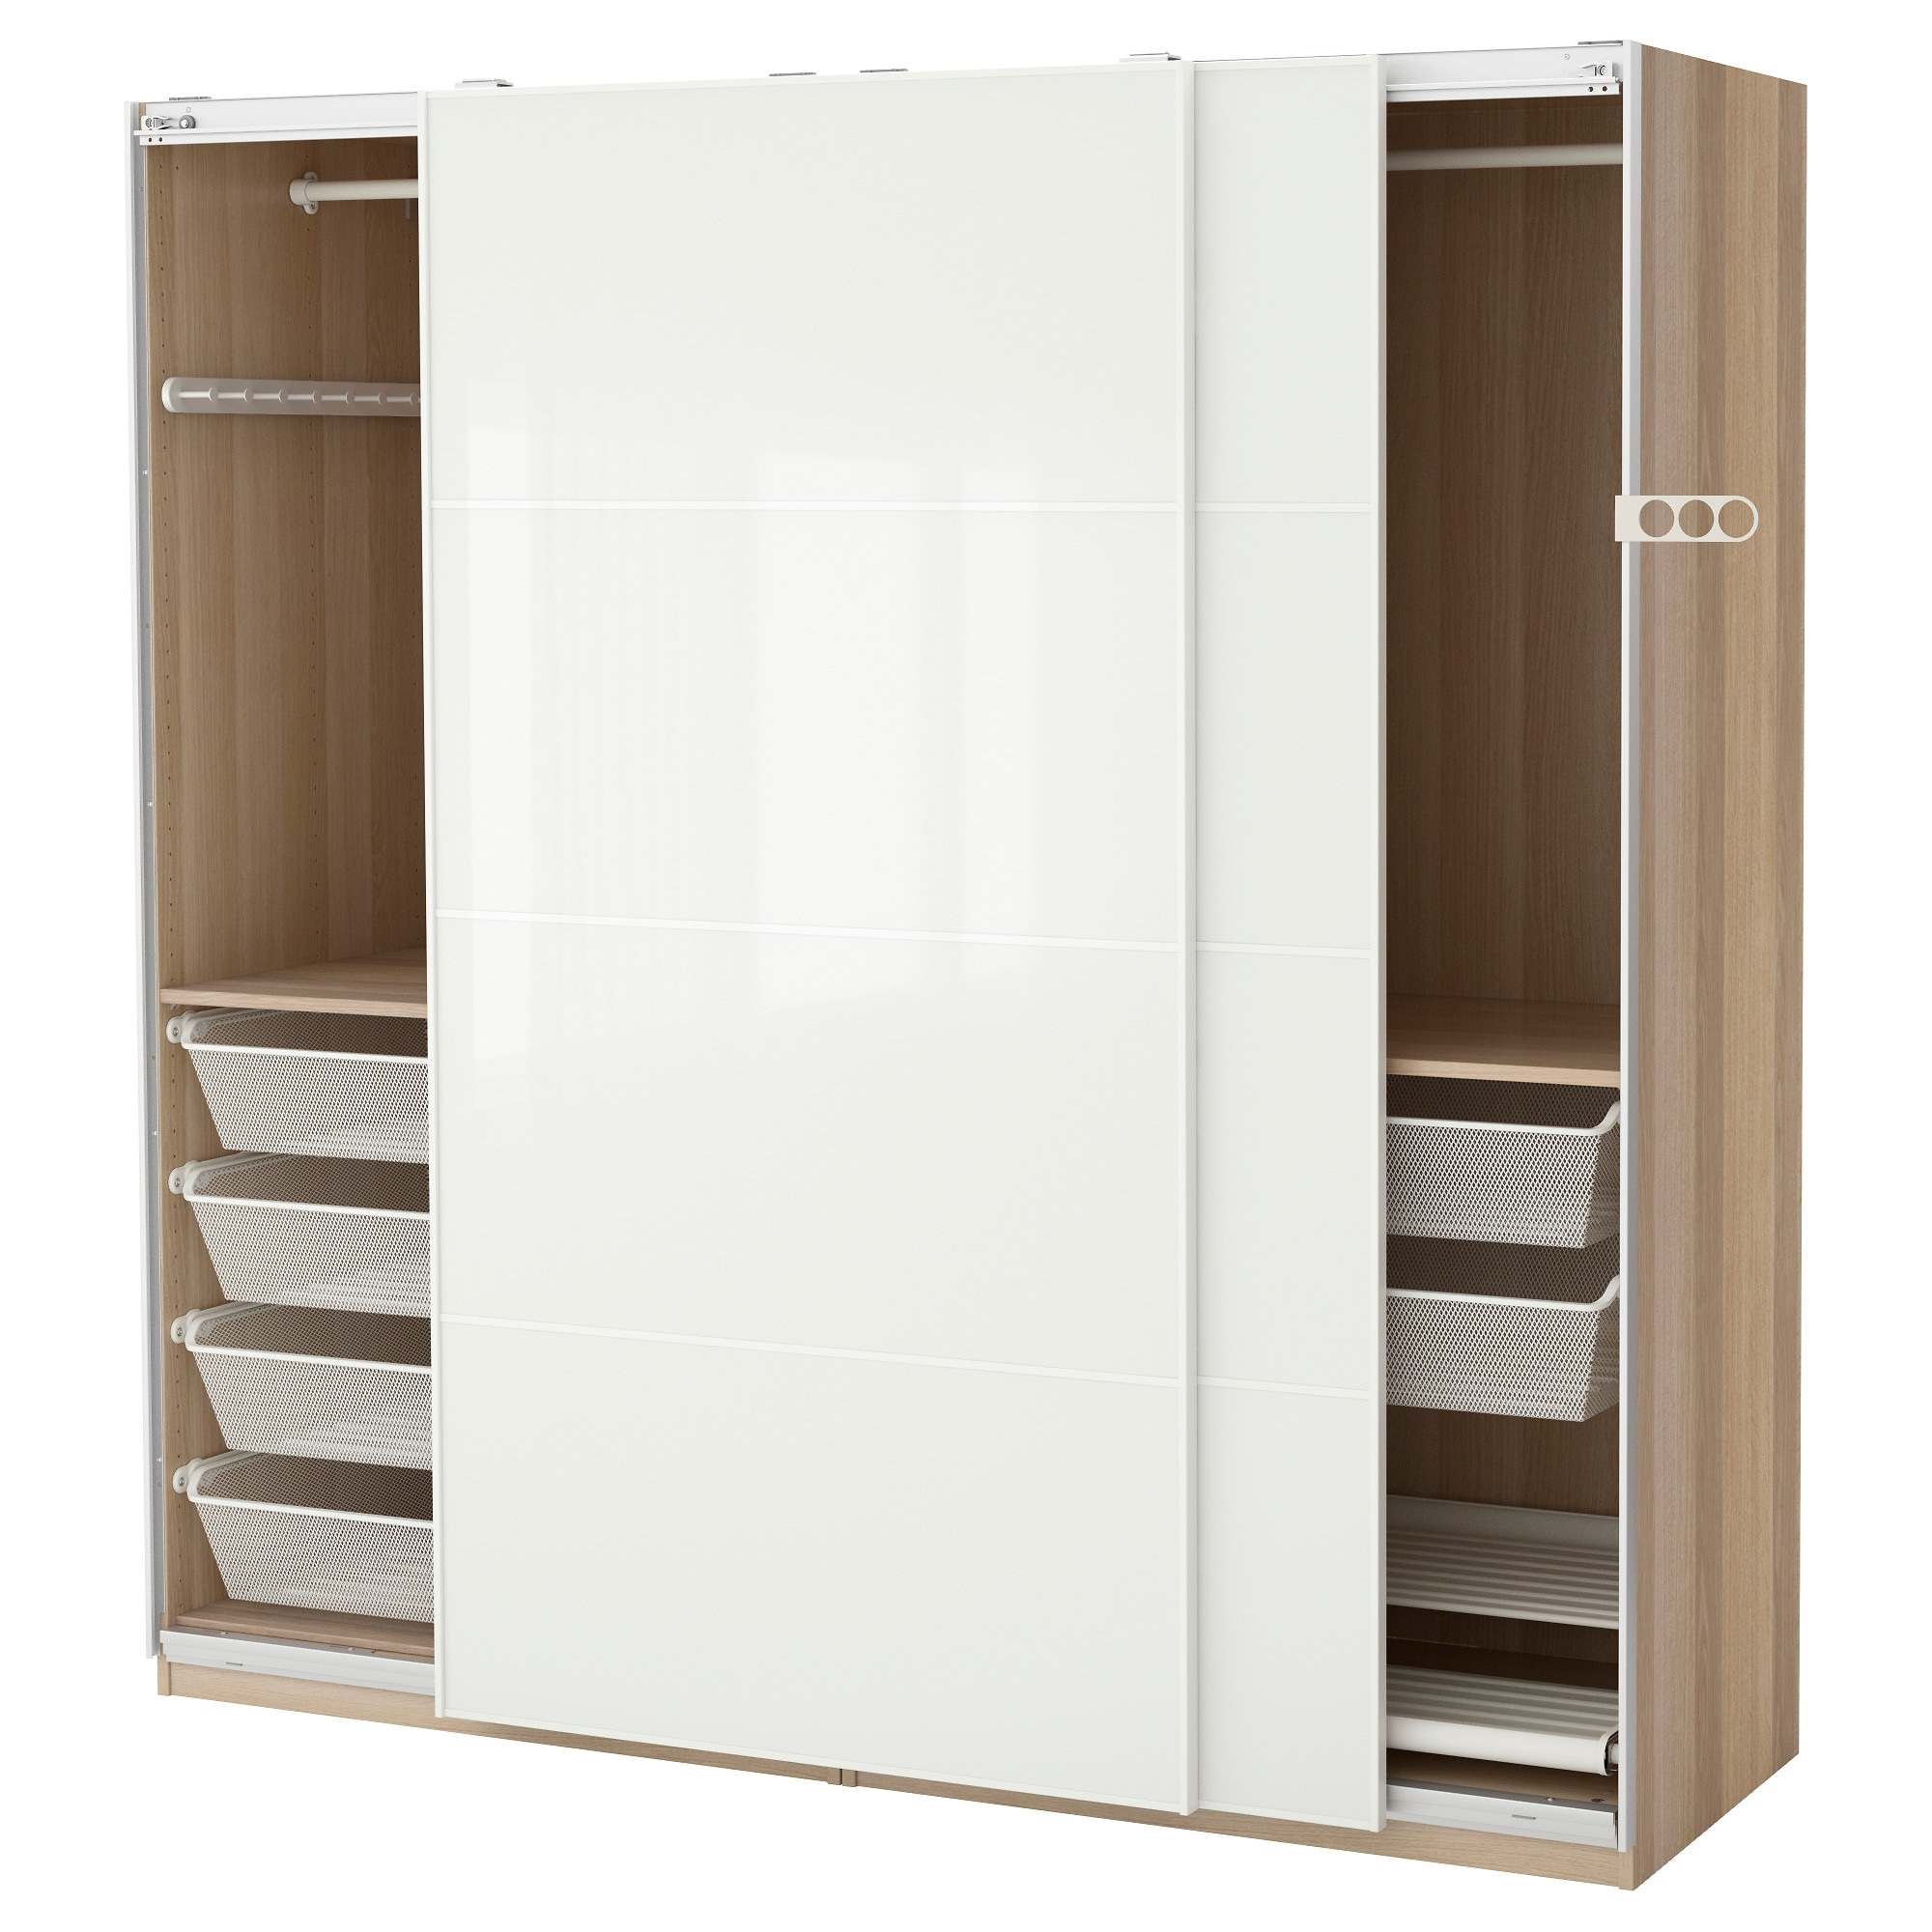 wardrobes armoires open fitted sliding doors more ikea